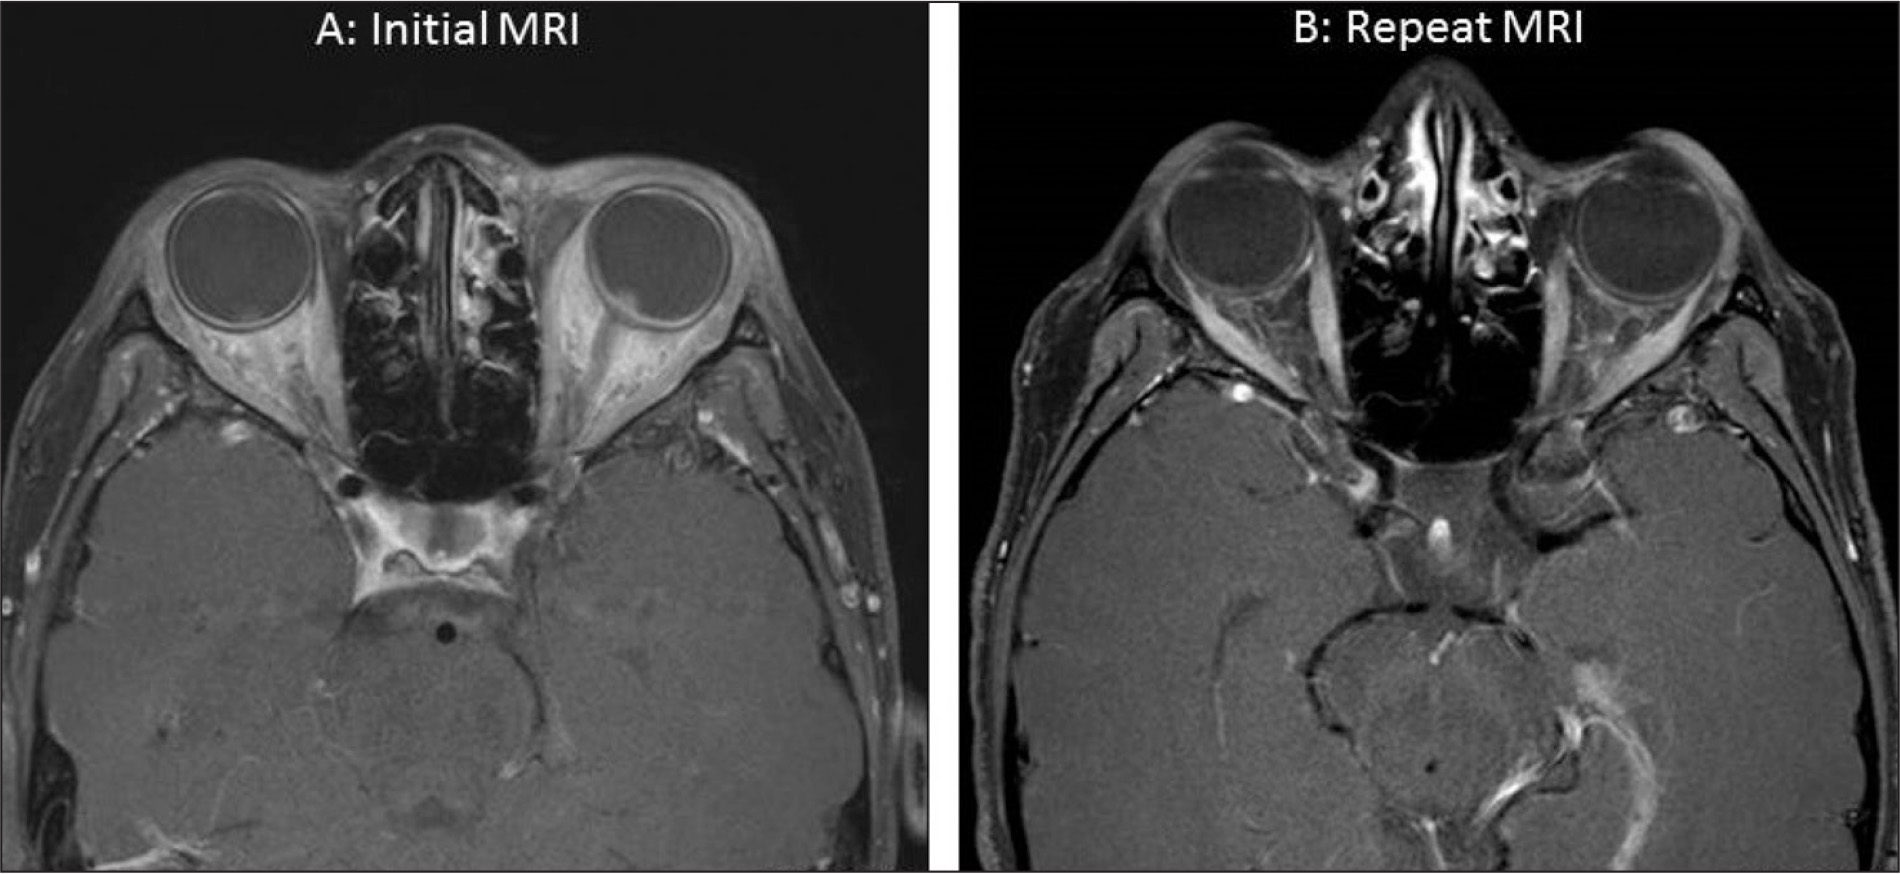 (A) Initial magnetic resonance imaging (MRI) (T1-weighted post-contrast, fat saturated view) showing bilaterally enhancing soft tissue density in the intraconal fat and prominence of the optic discs and enhancement of the sclera bilaterally. (B) Repeat MRI shows improved orbital inflammation and near complete resolution of optic disc and scleral enhancement.